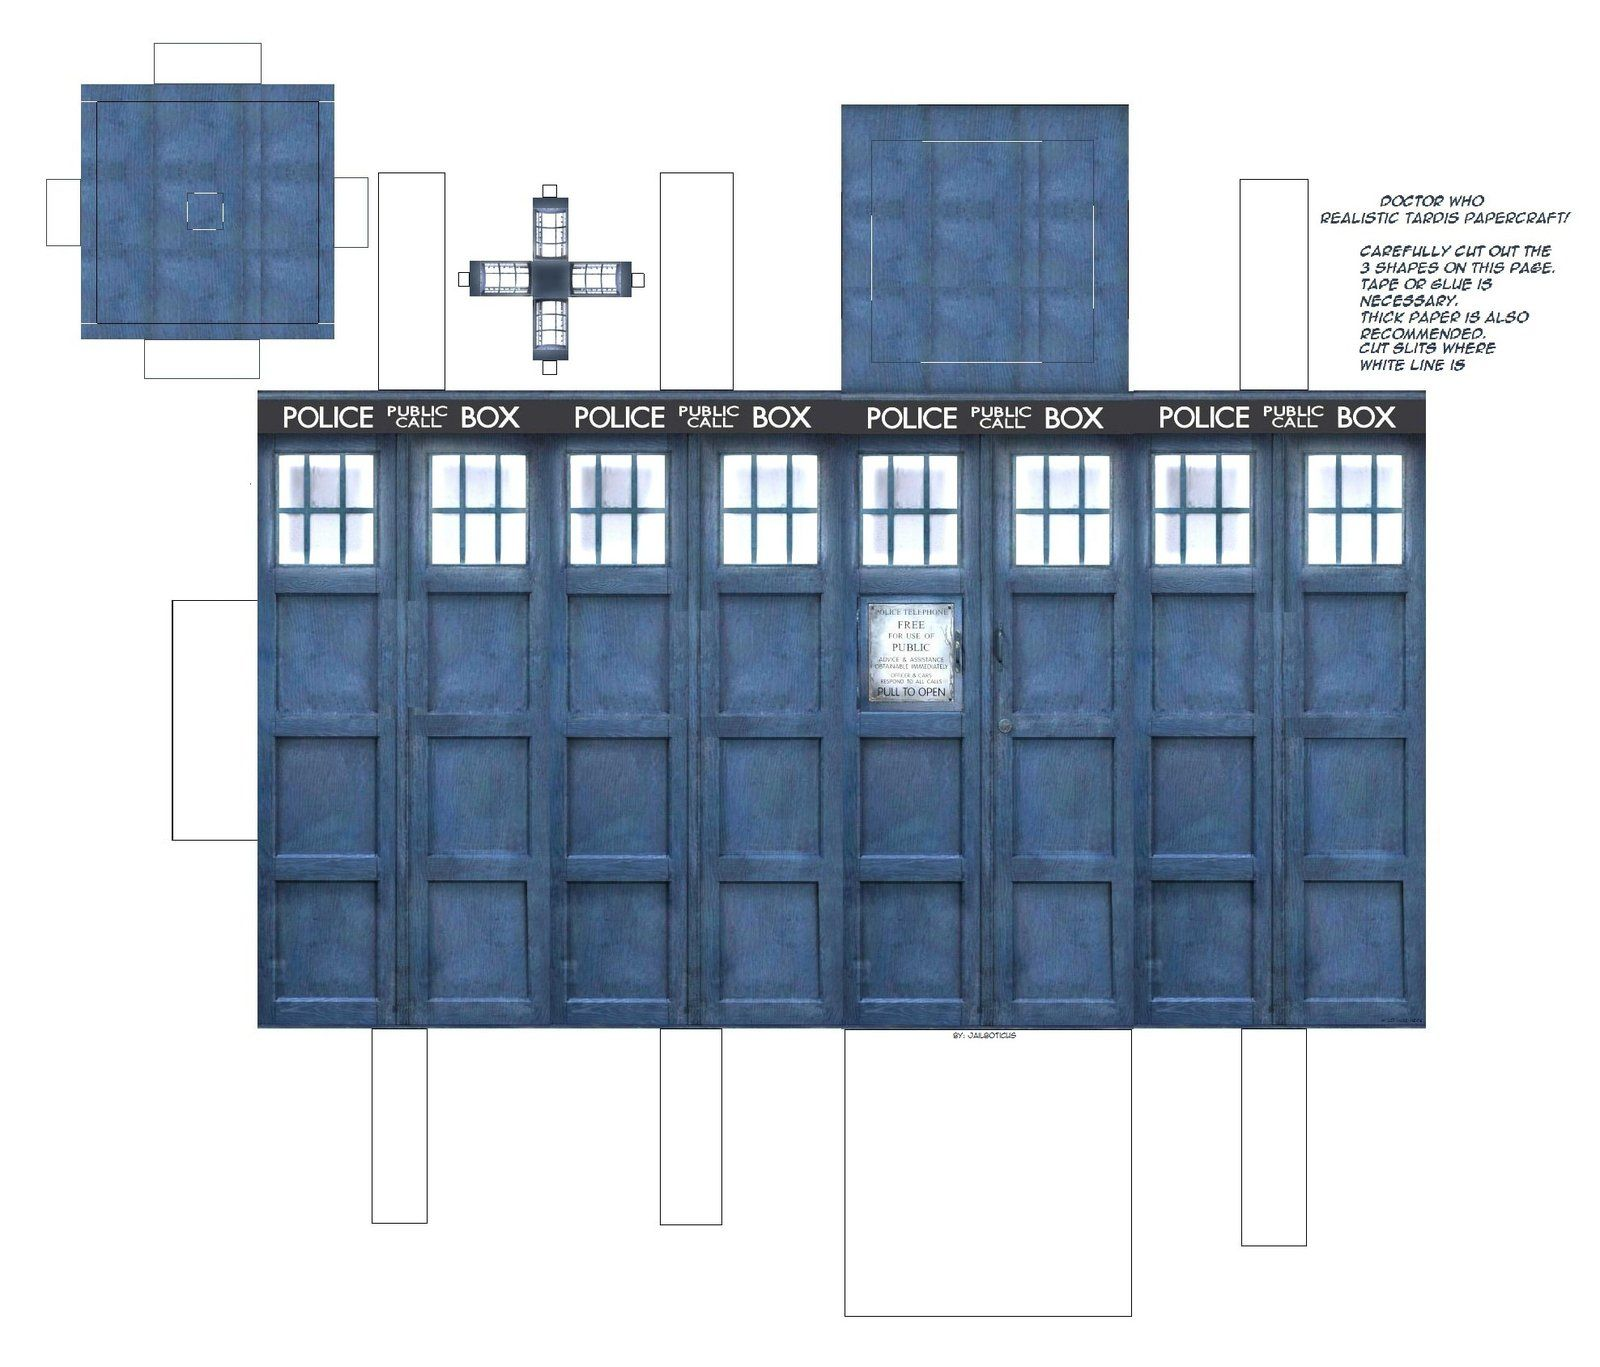 Doctor Who Tardis Papercraft by Jailboticus on deviantART | Geek Out ...